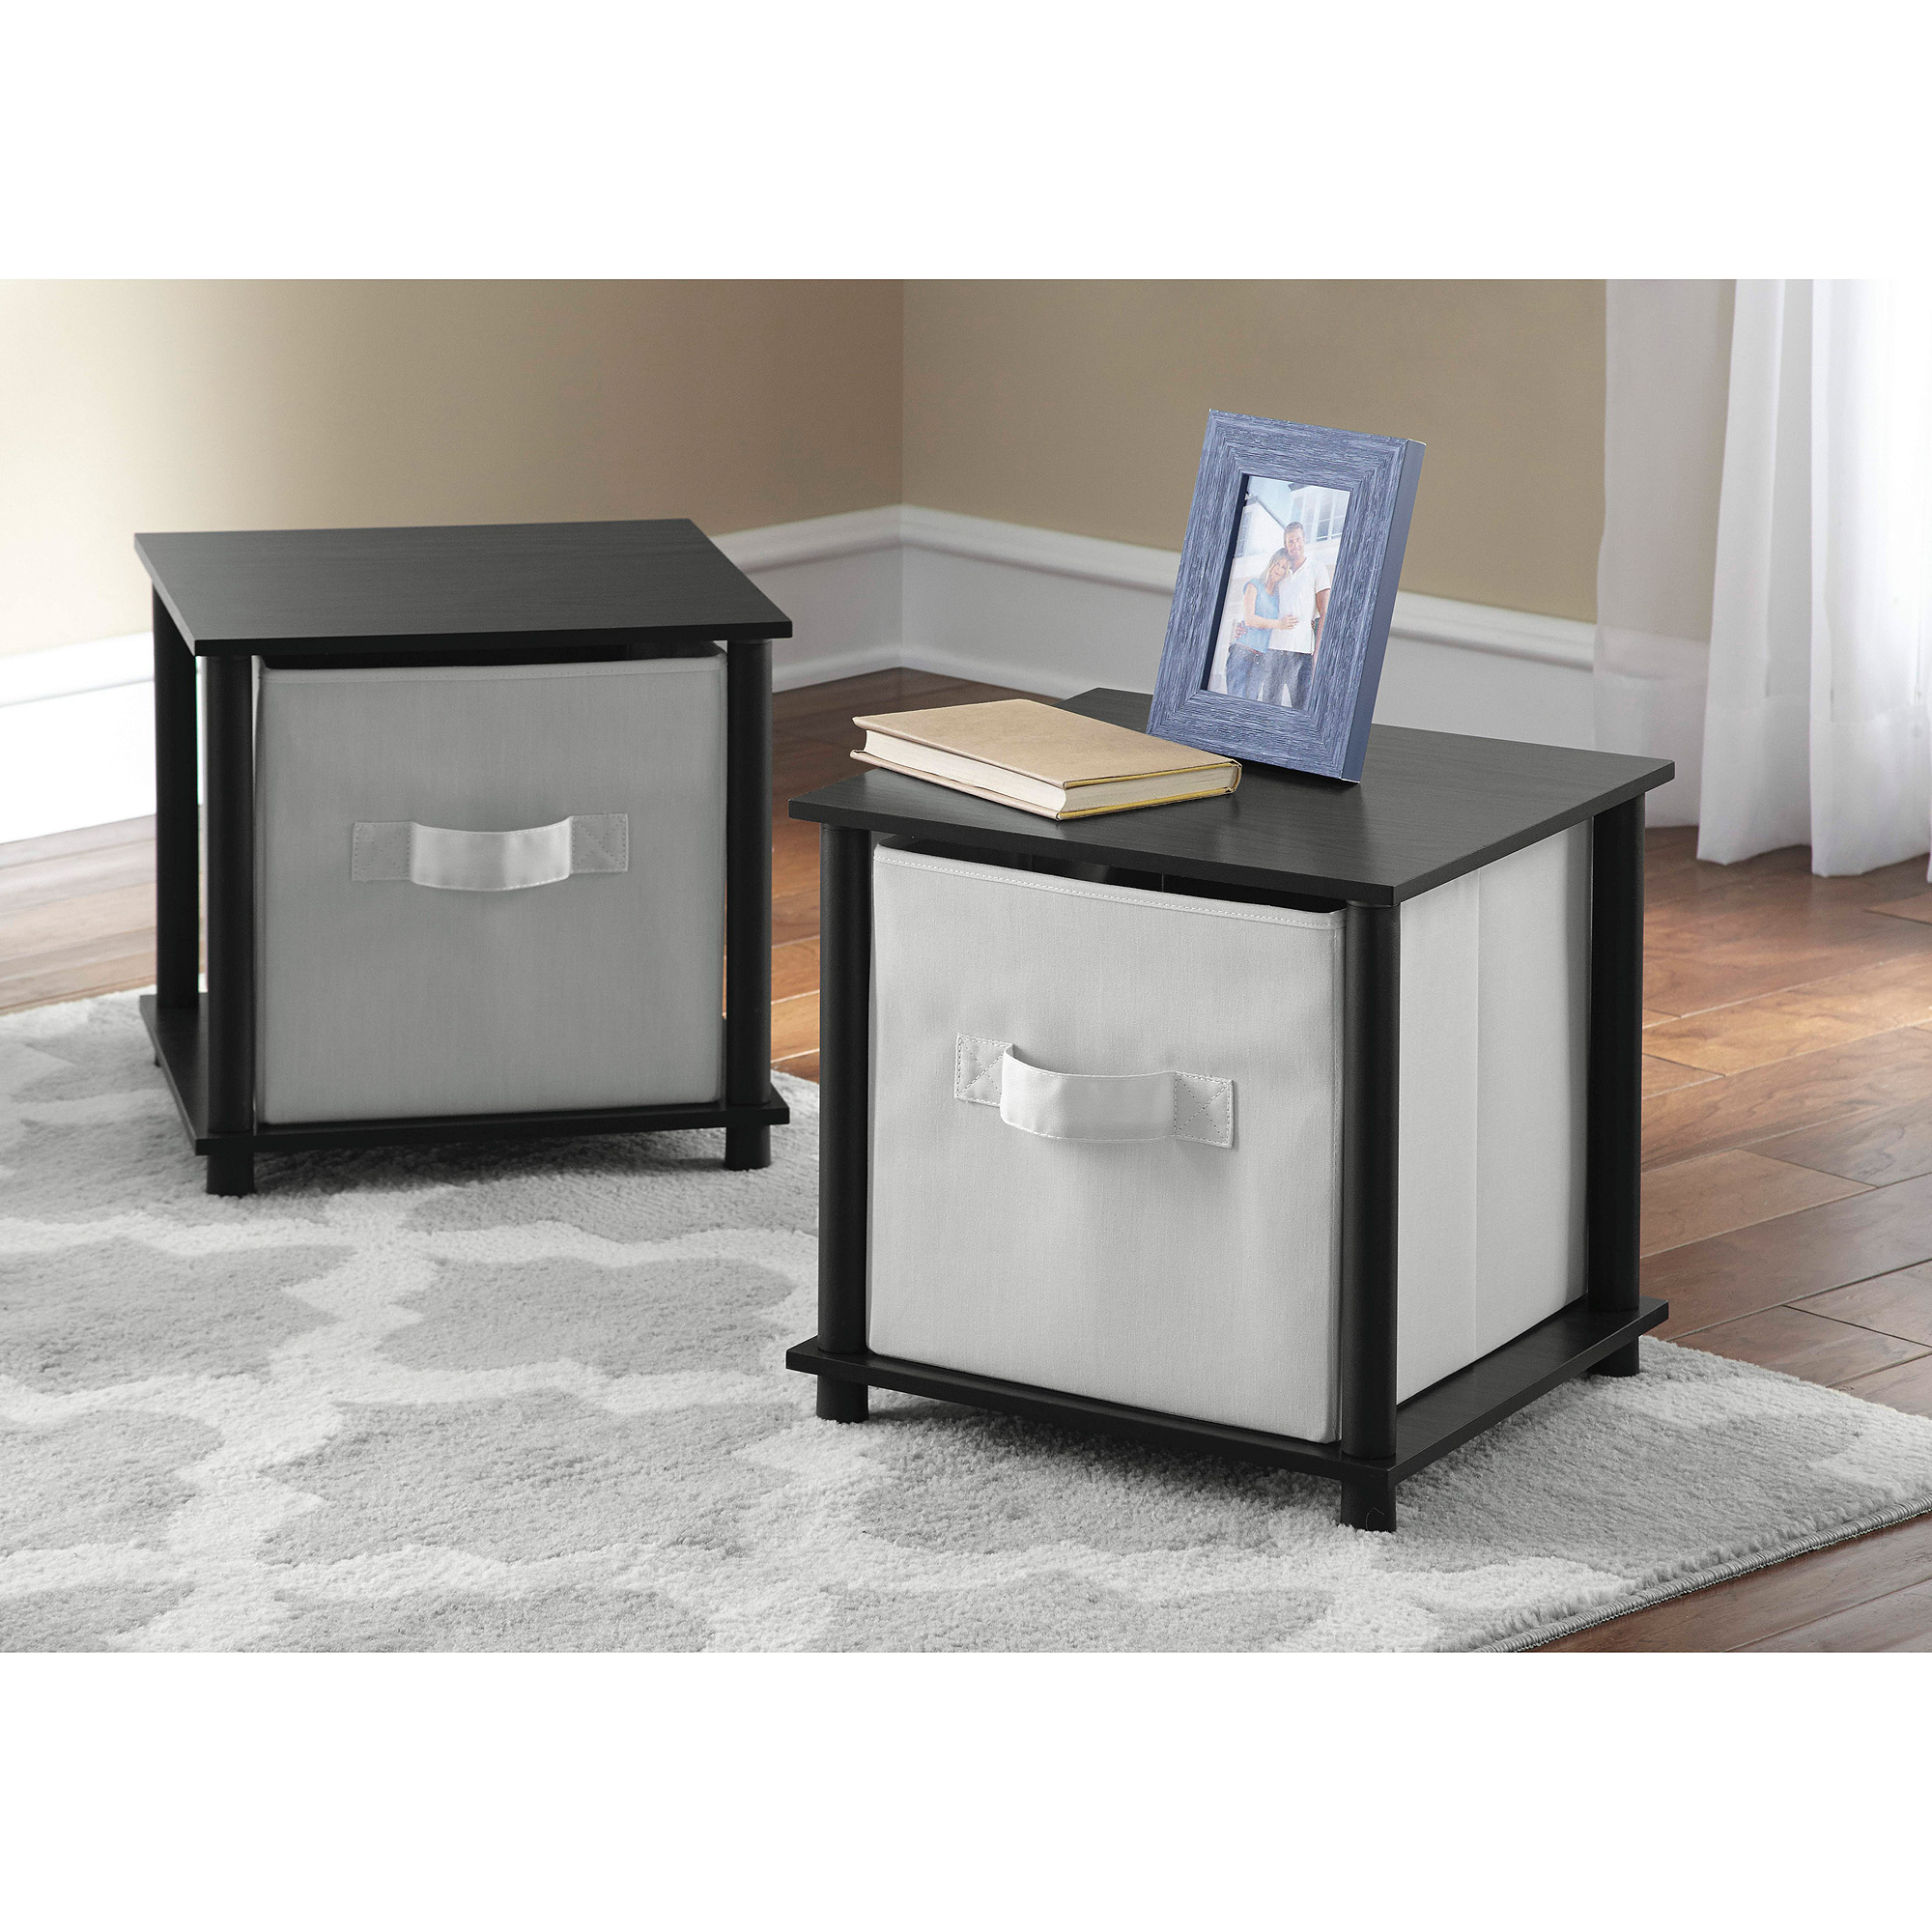 mainstays no tools single cube storage shelf side tables set of 2 walmartcom - Side Tables For Living Room